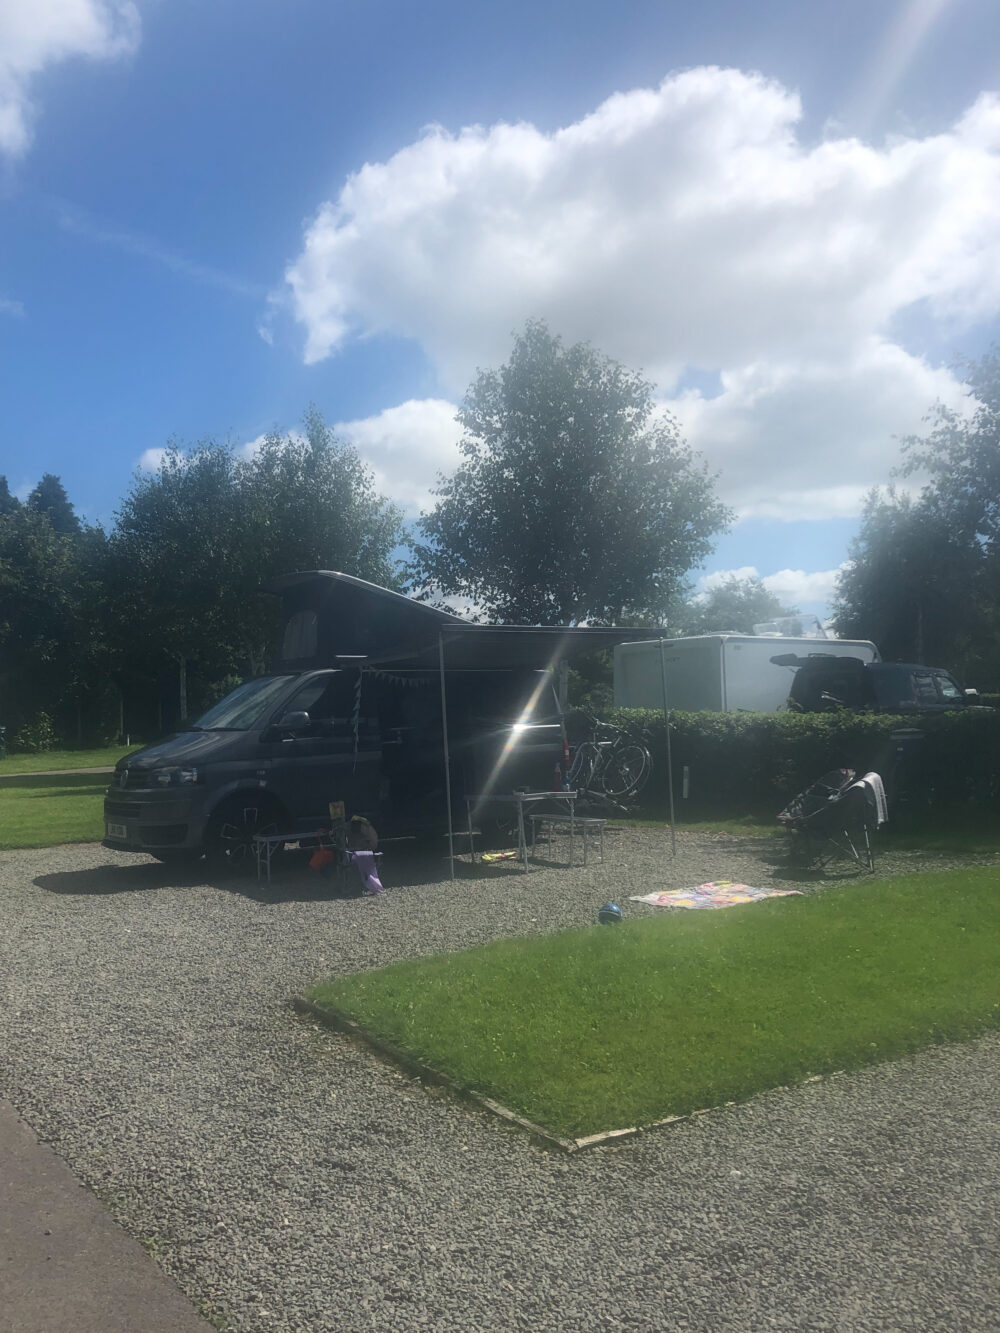 pitches at The Firs club site with The Caravan and Motorhome Club T5 converted camper